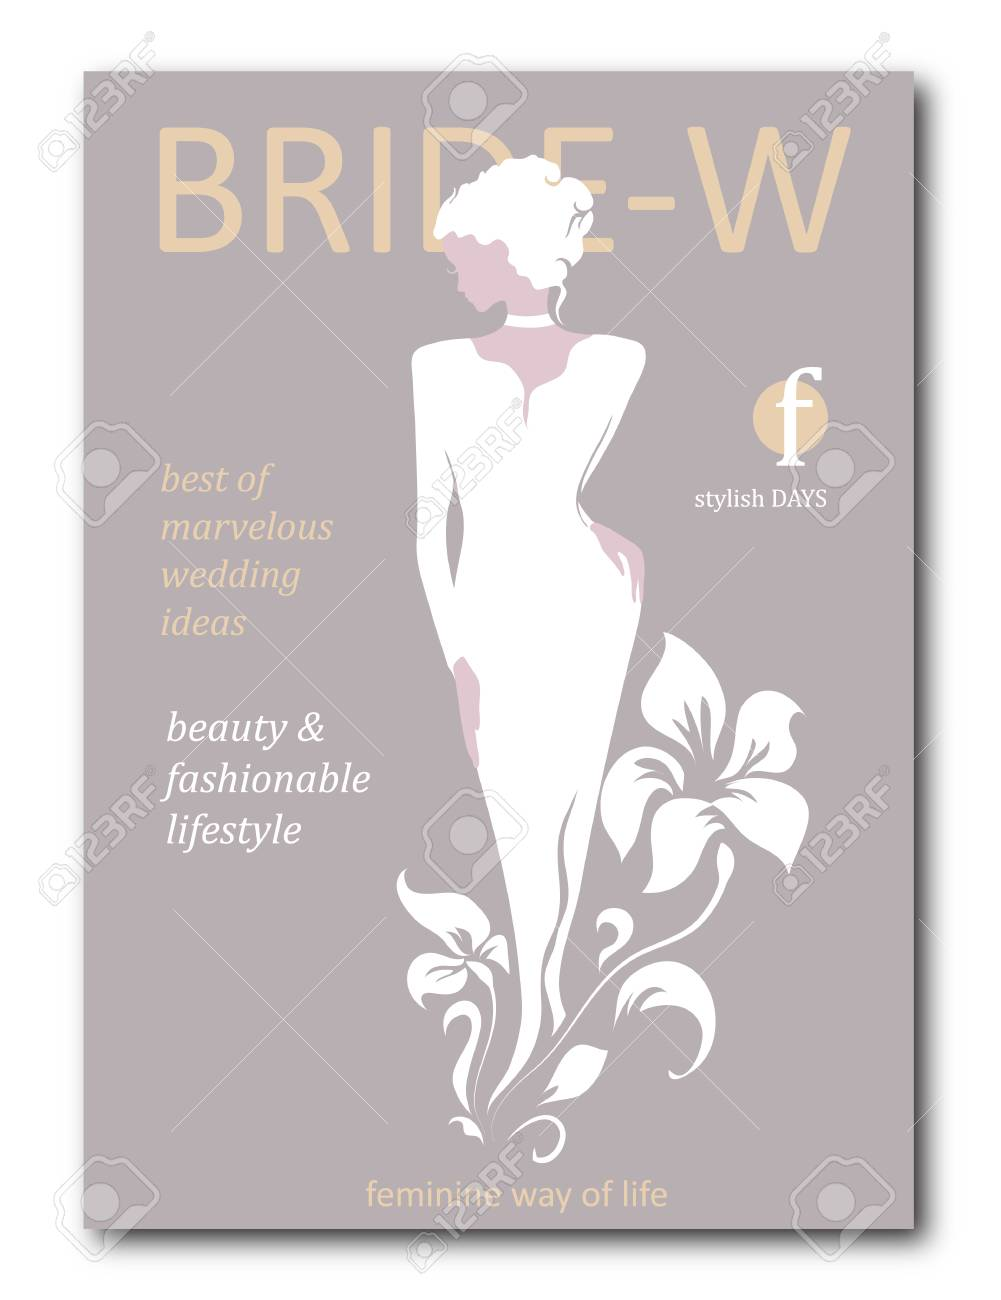 Abstract Bride Woman With Floral With Silhouette Fashion Magazine Royalty Free Cliparts Vectors And Stock Illustration Image 102391681